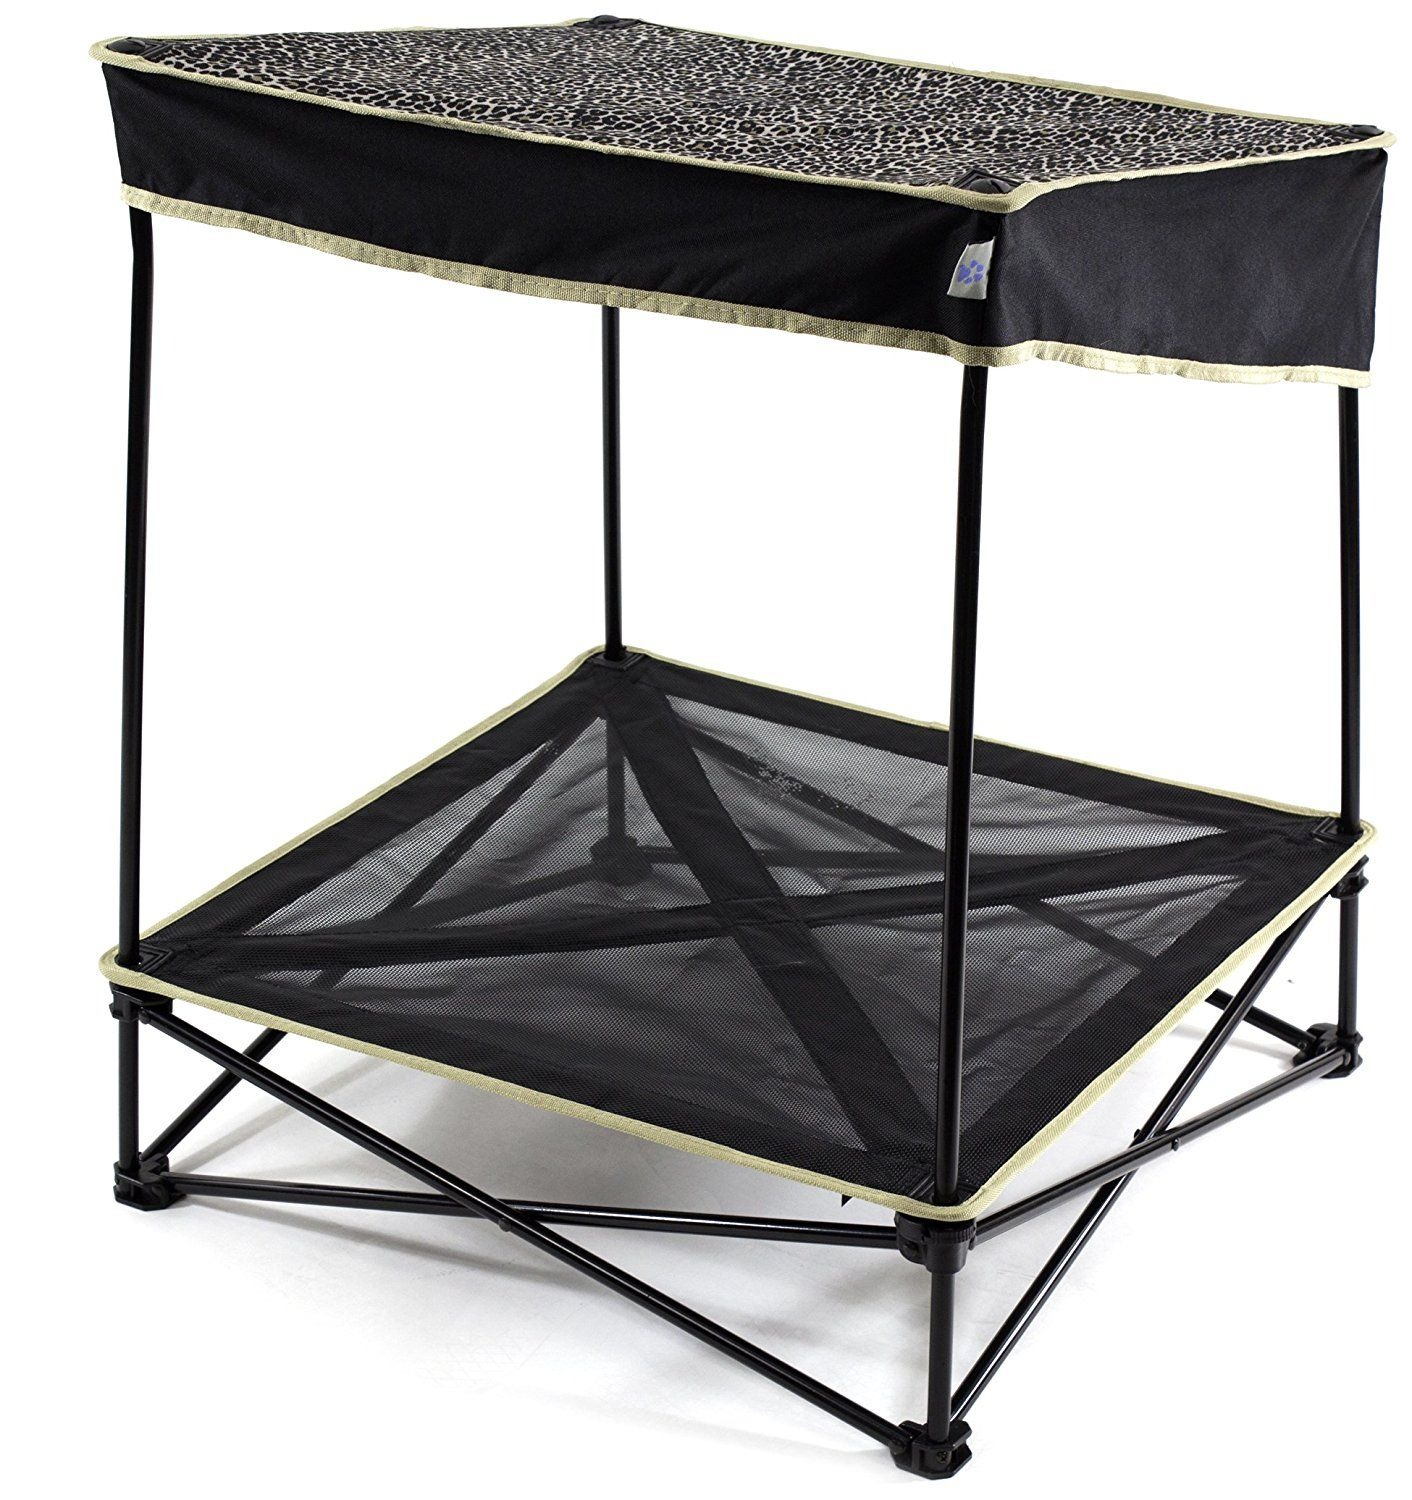 Quik Shade Outdoor Instant Pet Shade with Elevated Mesh